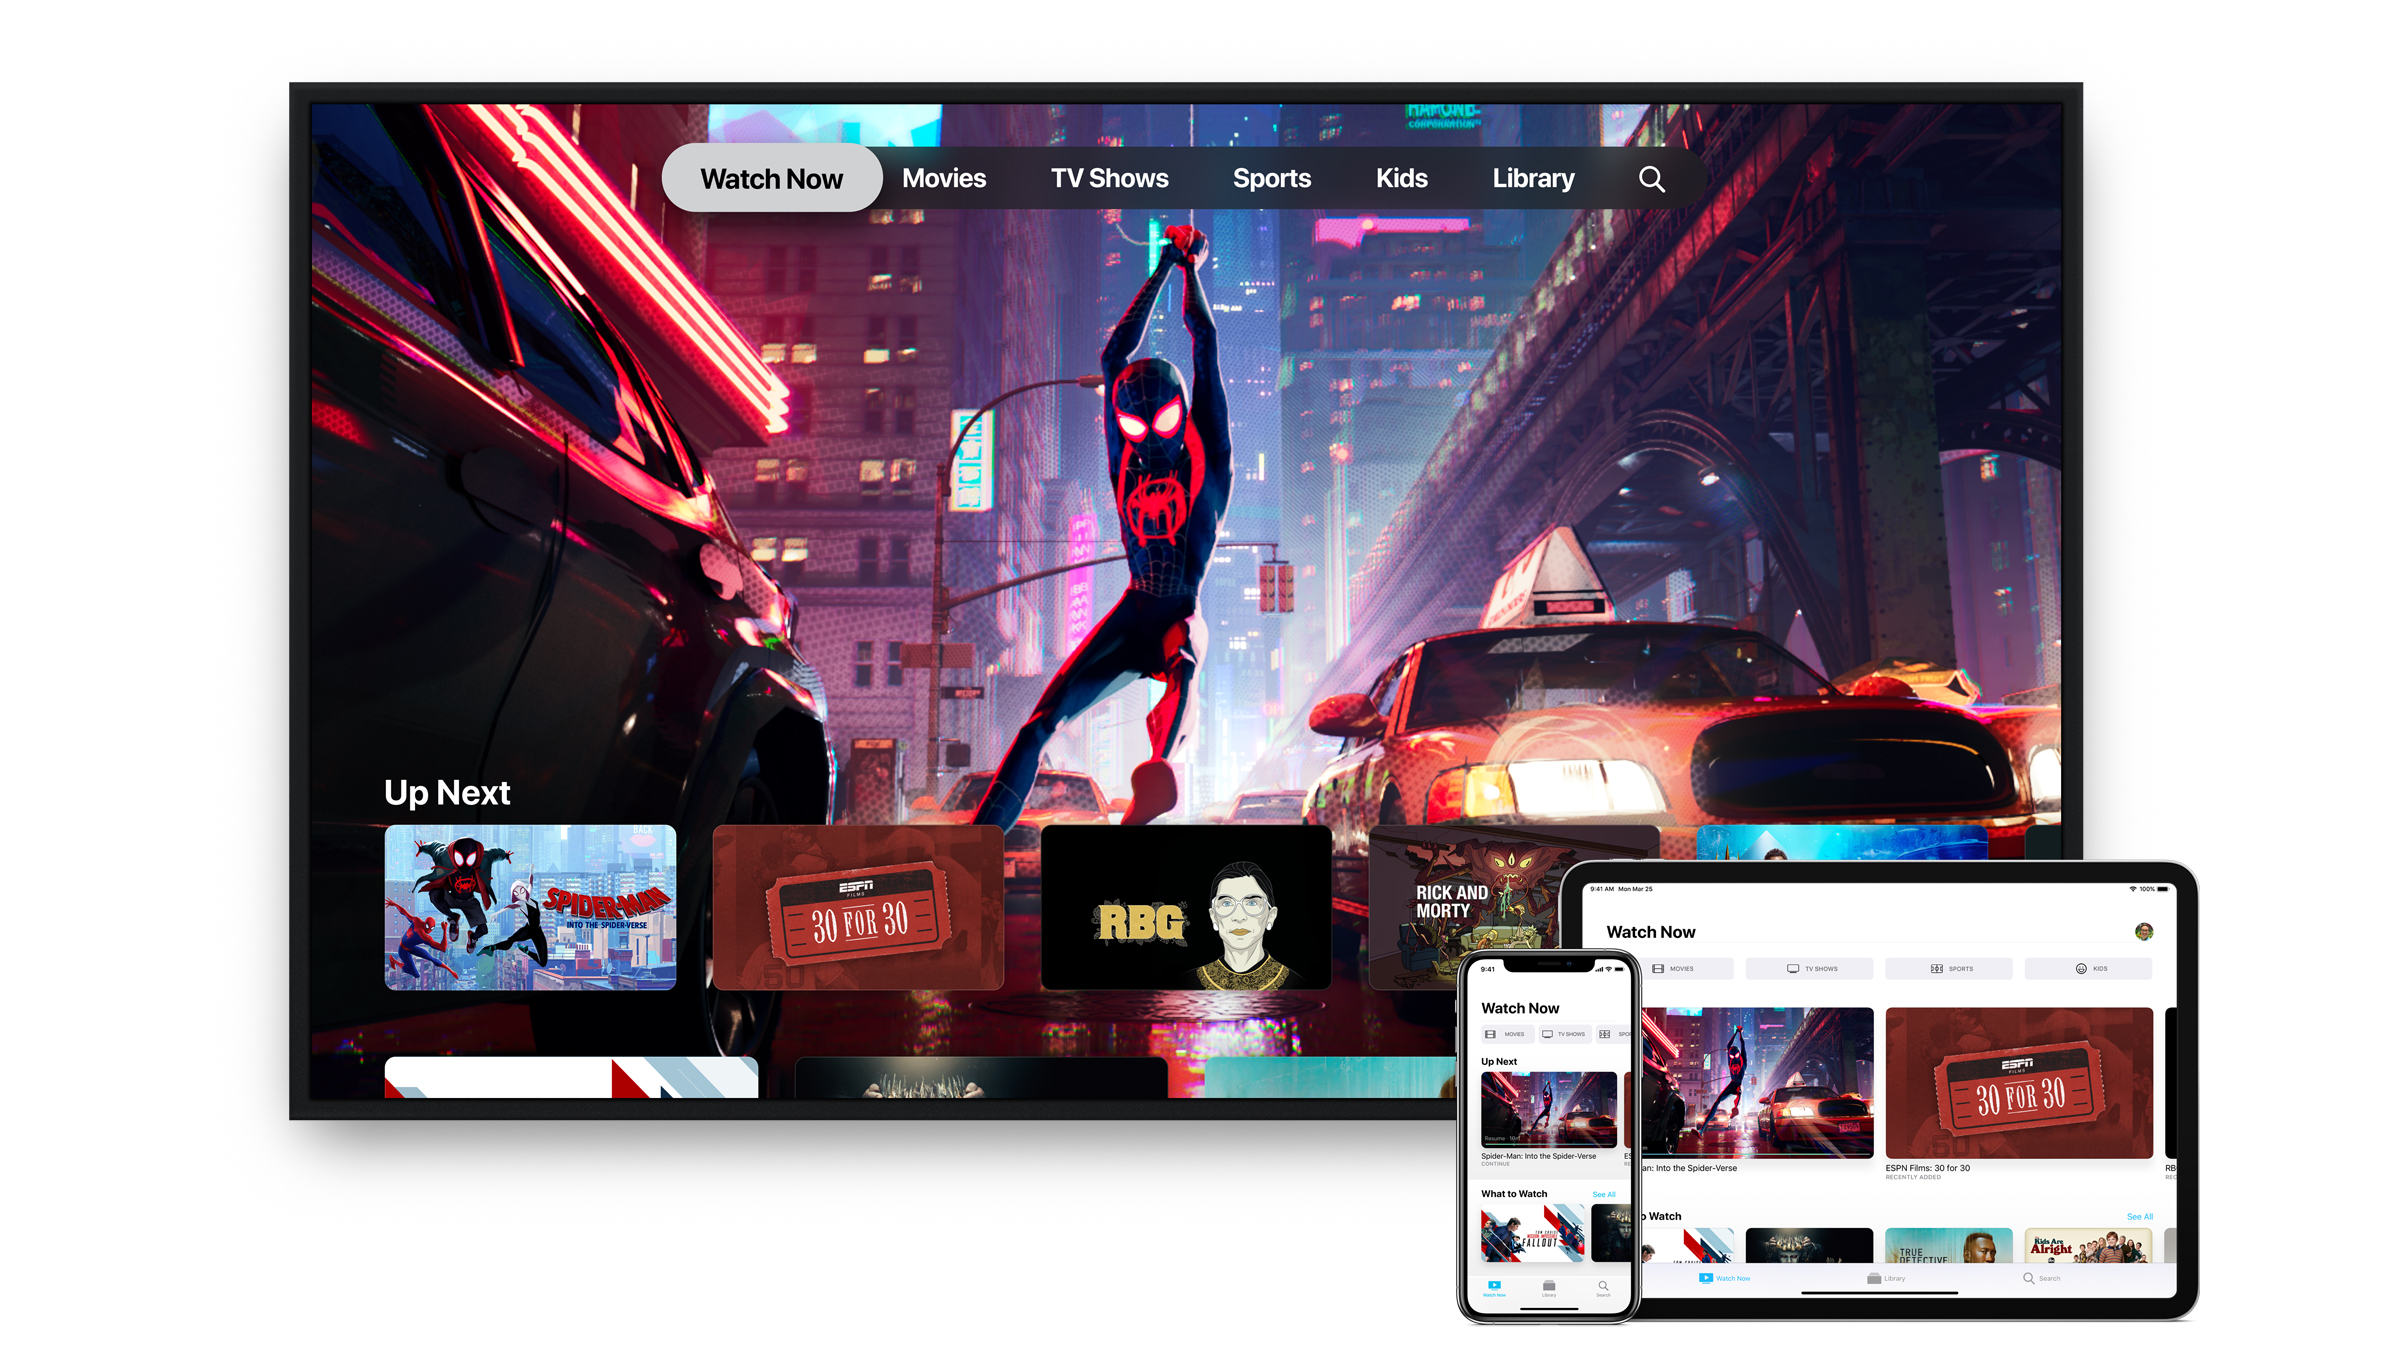 The new Apple TV app is here – a step towards a Netflix rival, or